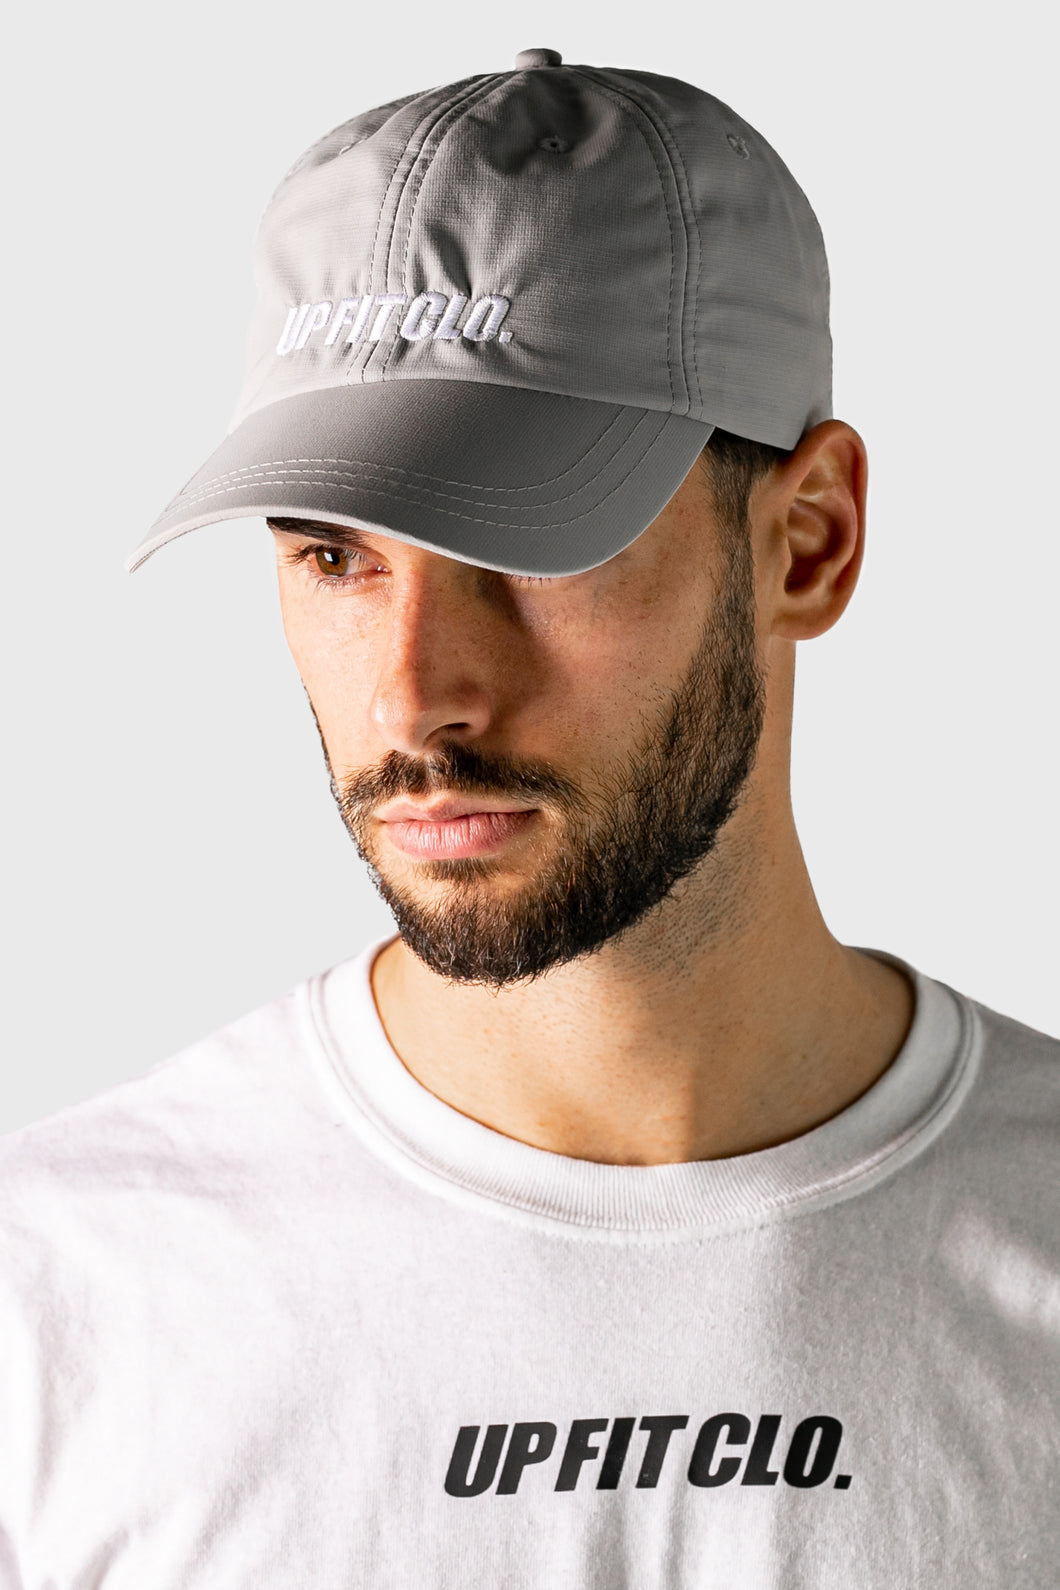 UP FIT CLO. PERFORMANCE CAP GREY